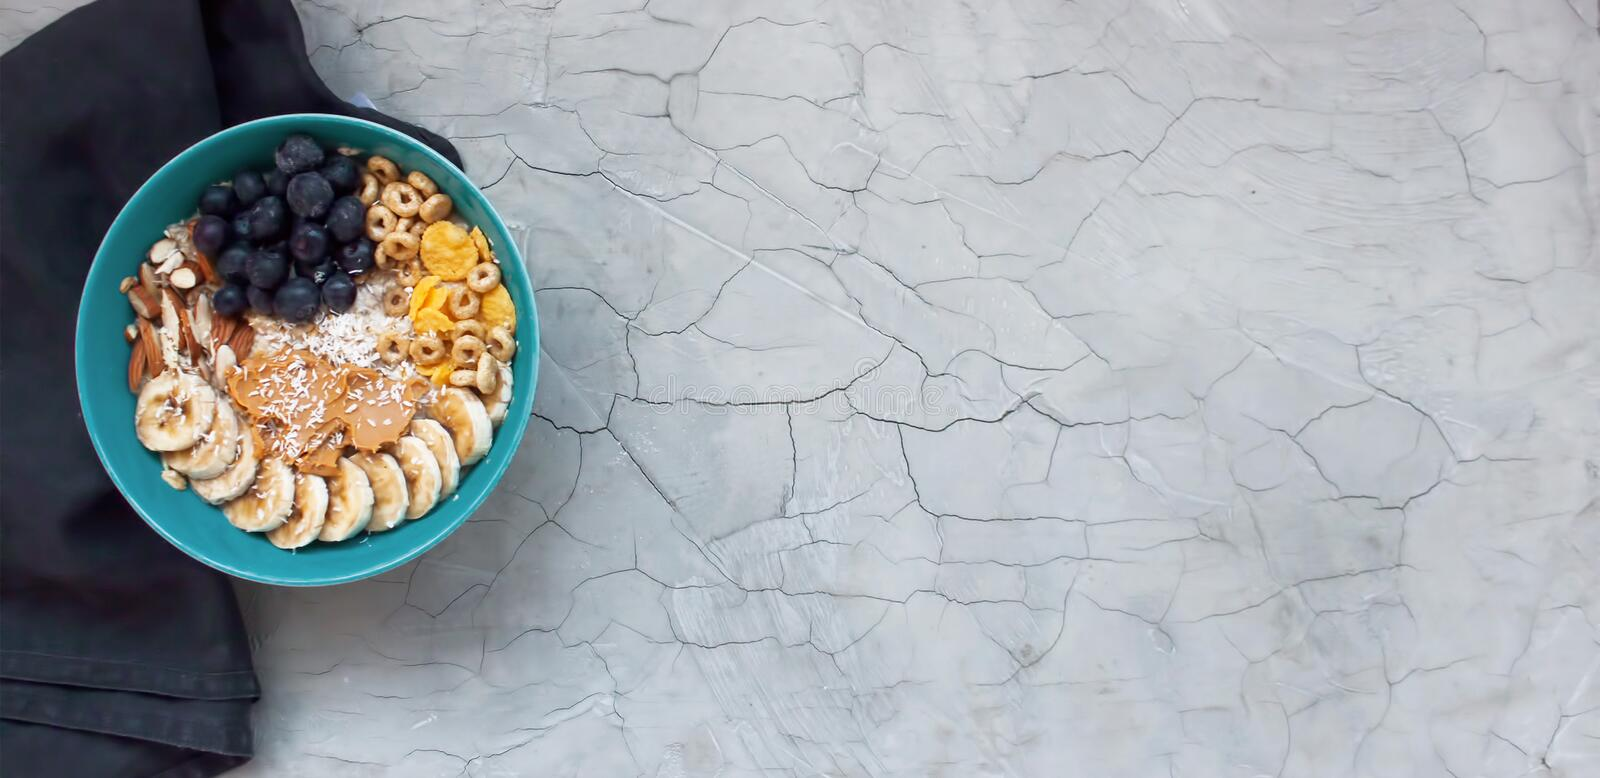 Healthy breakfast background with oats and fruits royalty free stock photo